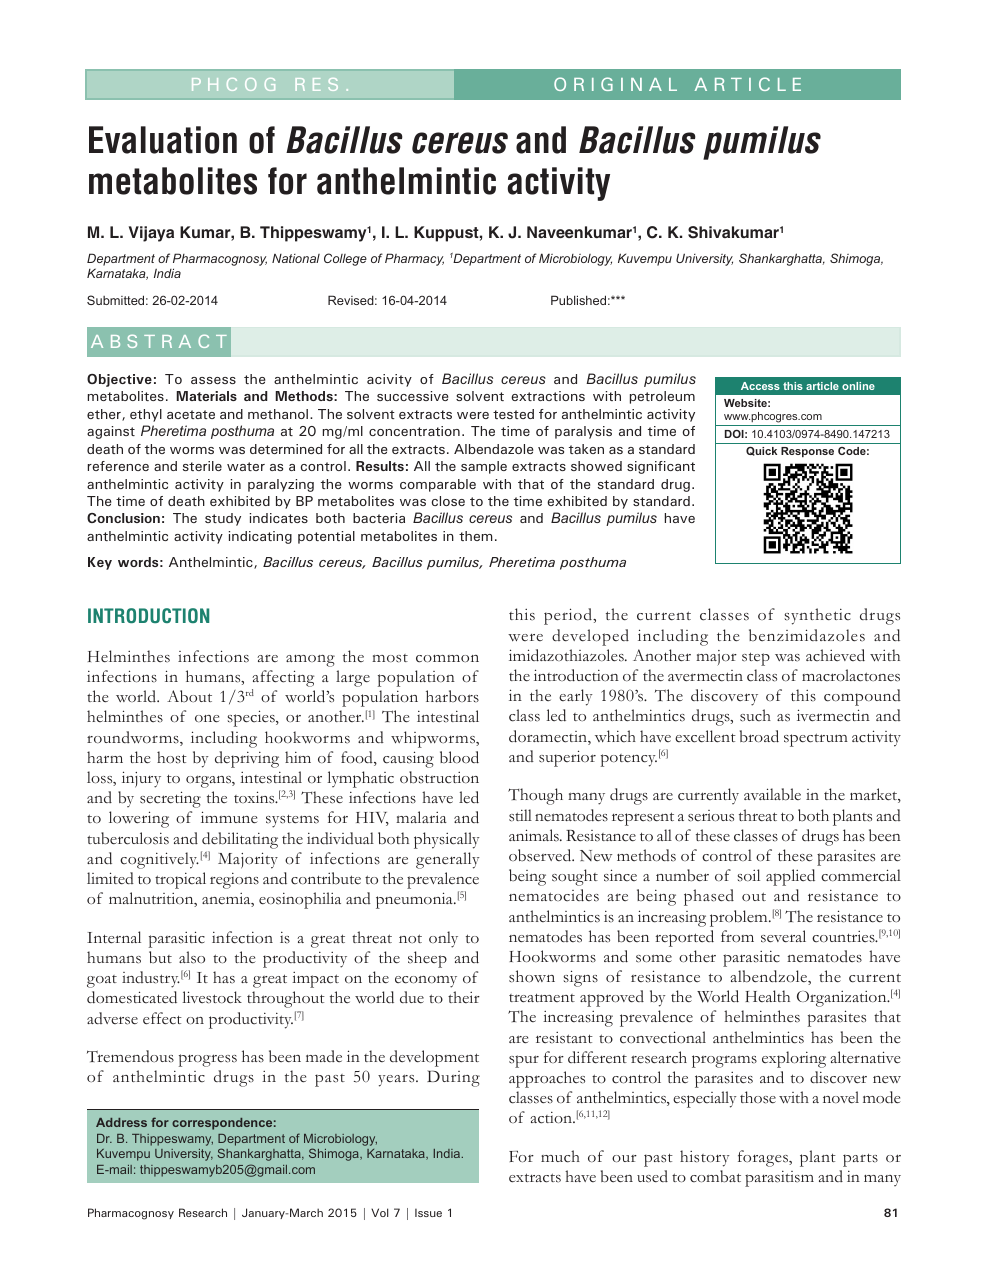 New alternatives in veterinary anthelminthic therapy